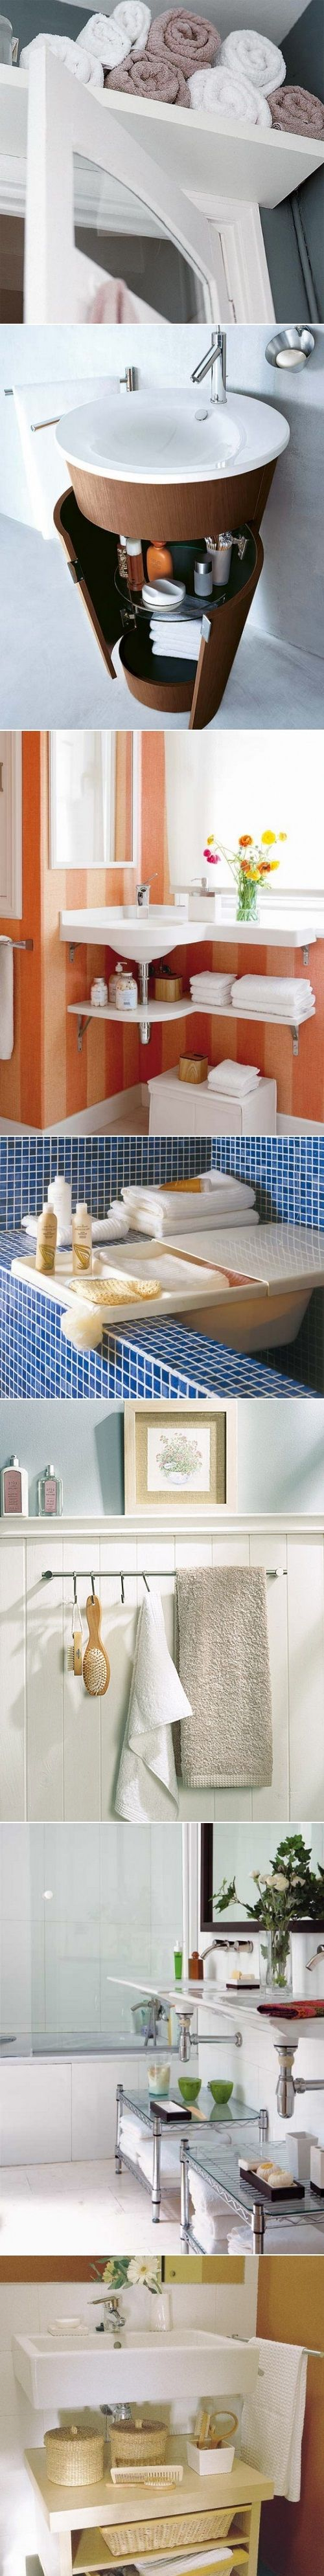 Diy Small Bathroom Storage Ideas Small Bathroom Diy Diy